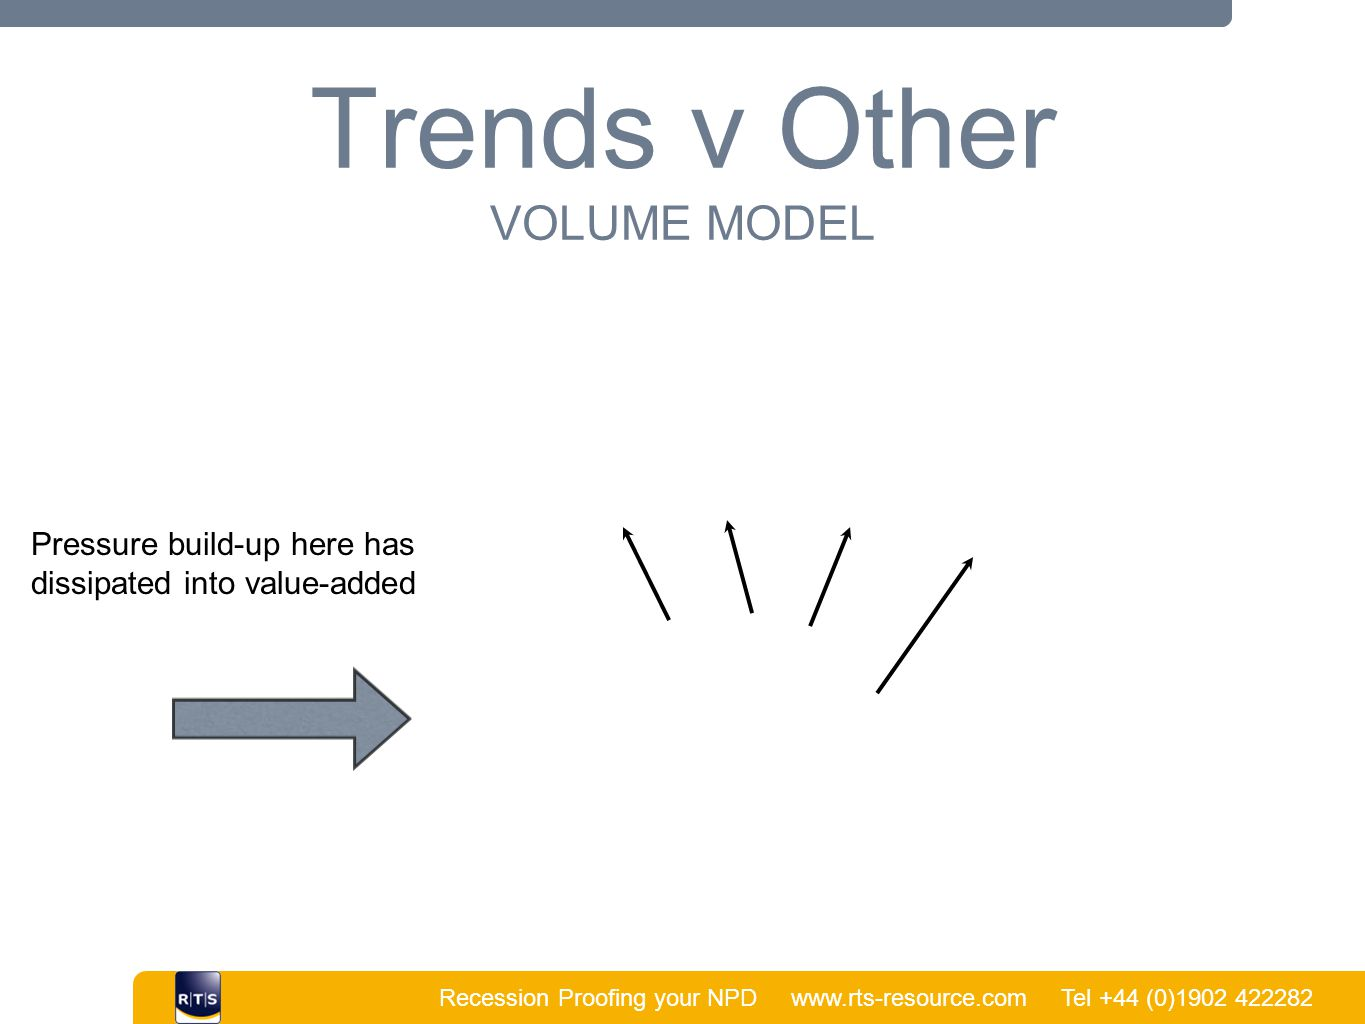 Recession Proofing your NPD www.rts-resource.com Tel +44 (0)1902 422282 | Trends v Other VOLUME MODEL Pressure build-up here has dissipated into value-added